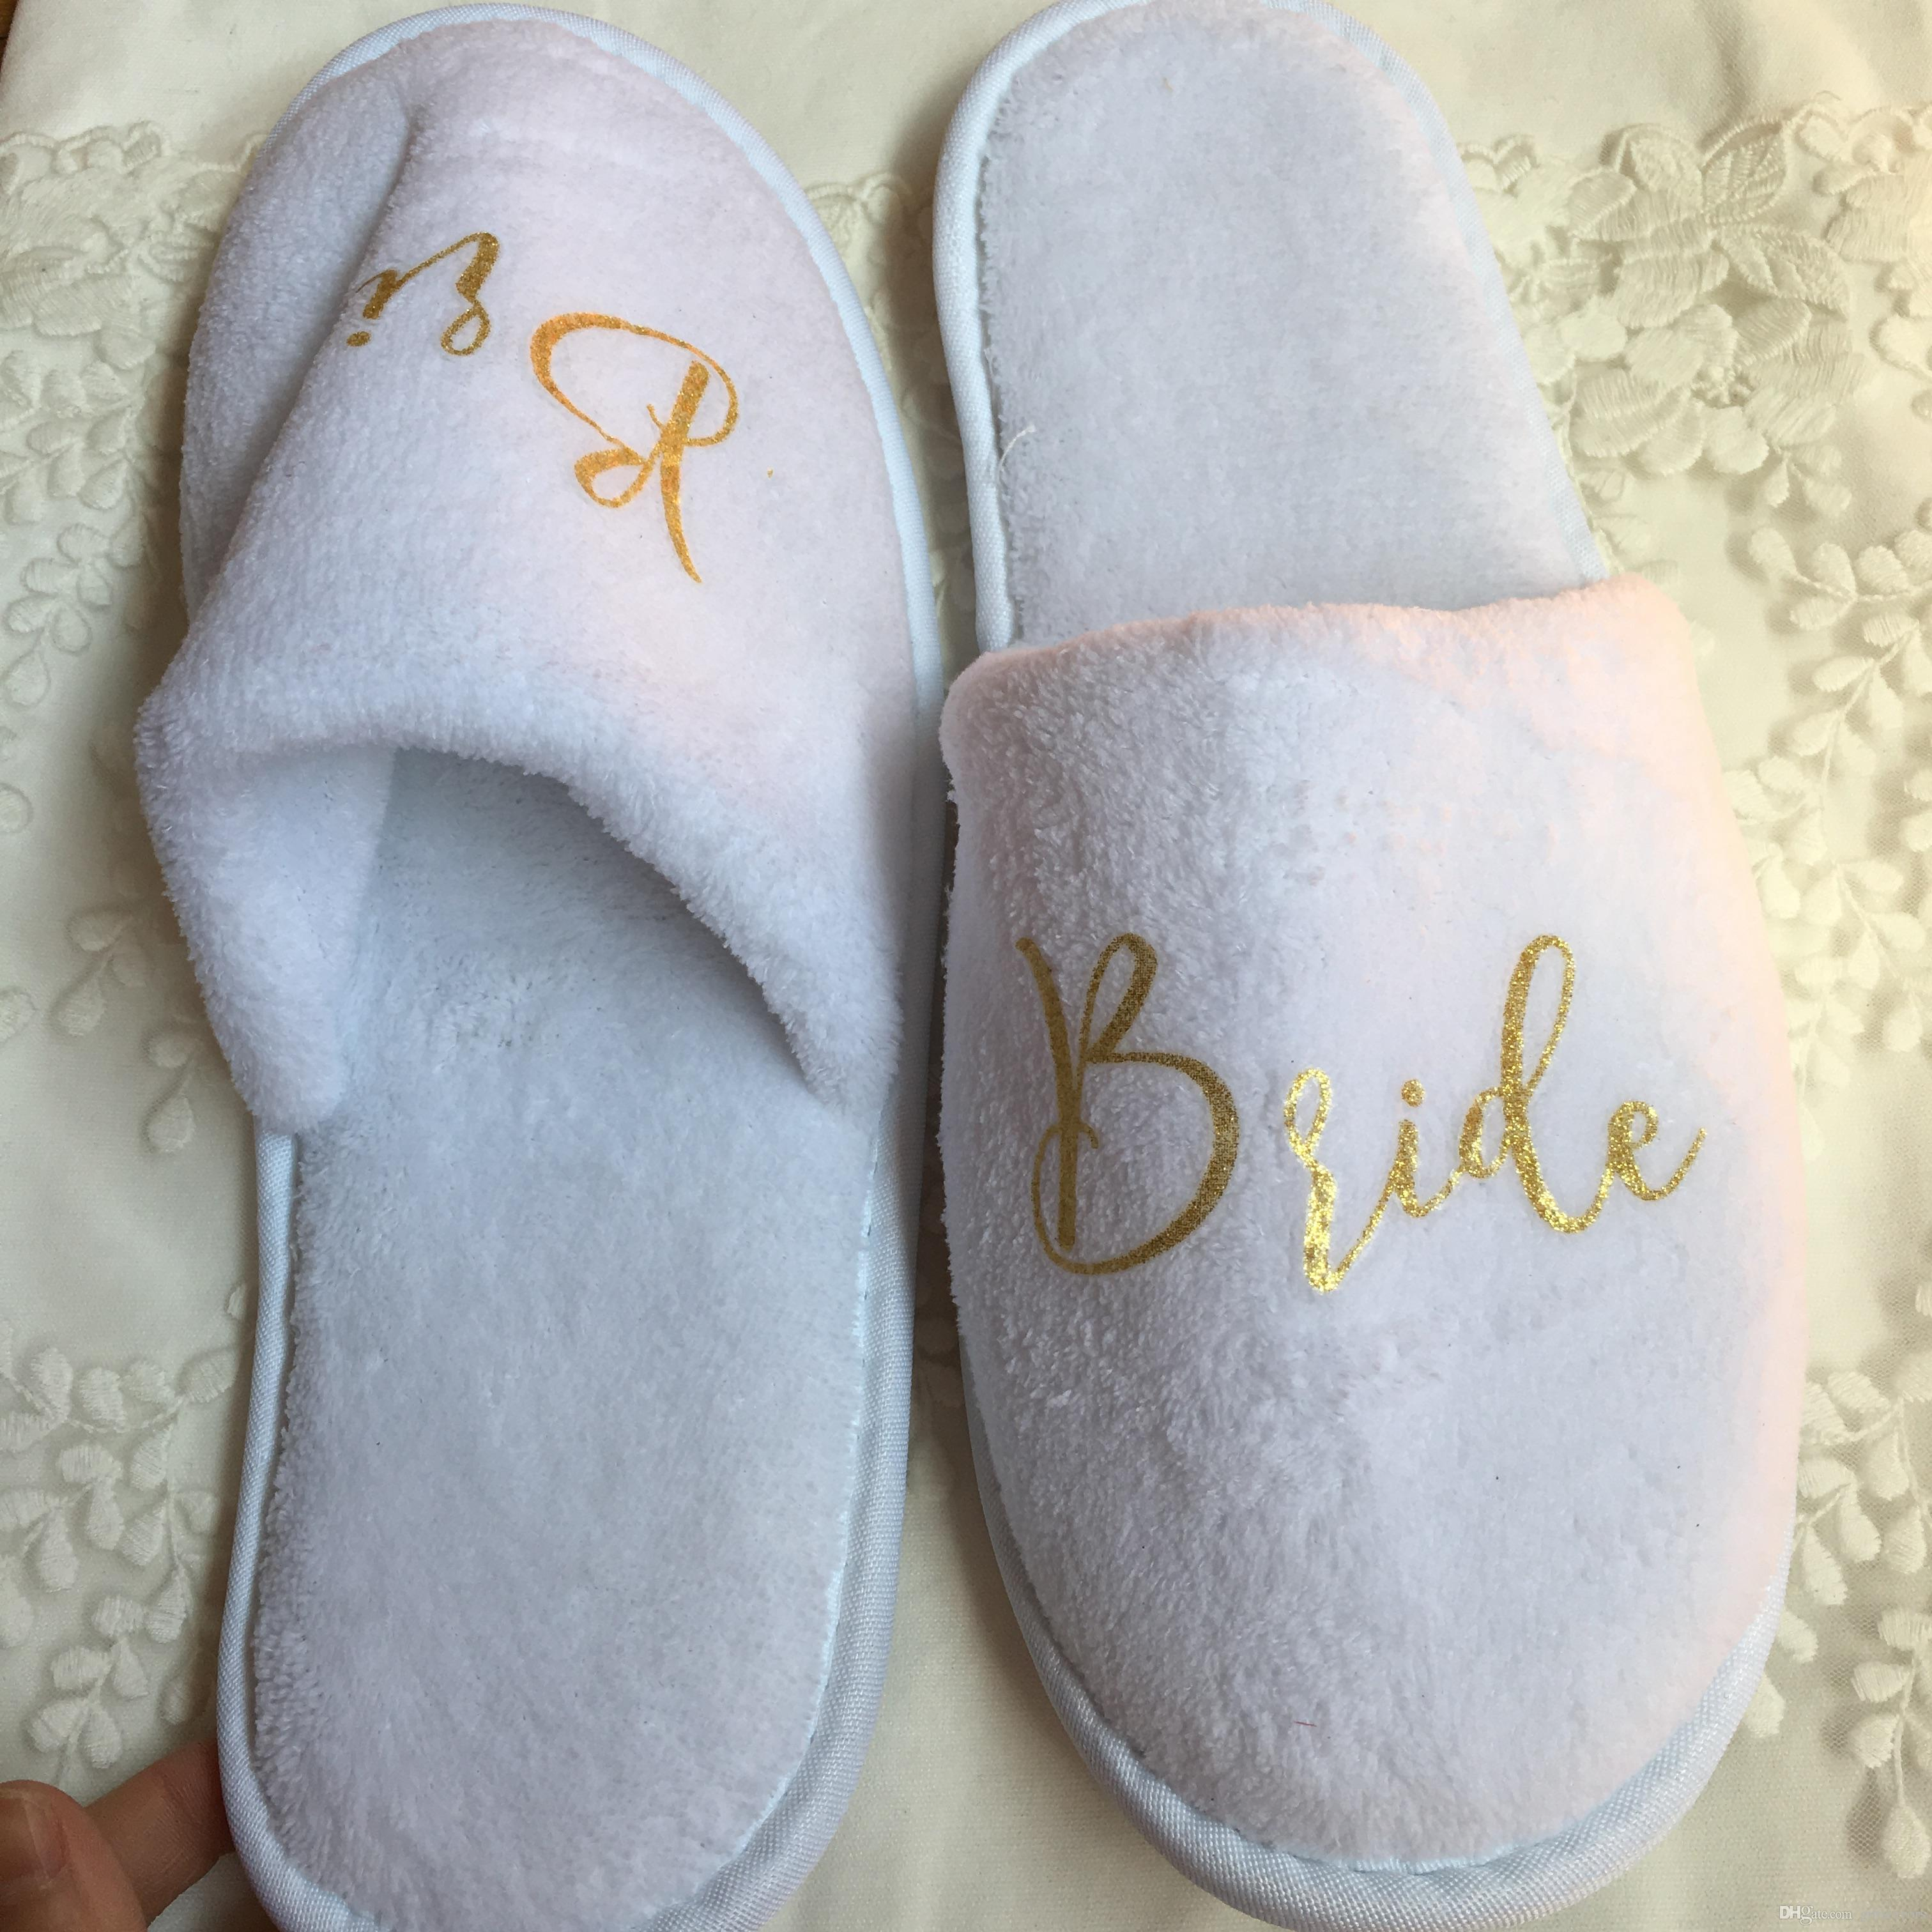 b10eb246980 White Red Wedding Slippers Bride Be To Hen Party Favors Bridesmaid Gifts  Wedding Favor Stickers Make Wedding Favors From Giftsfavors, &Price;| ...